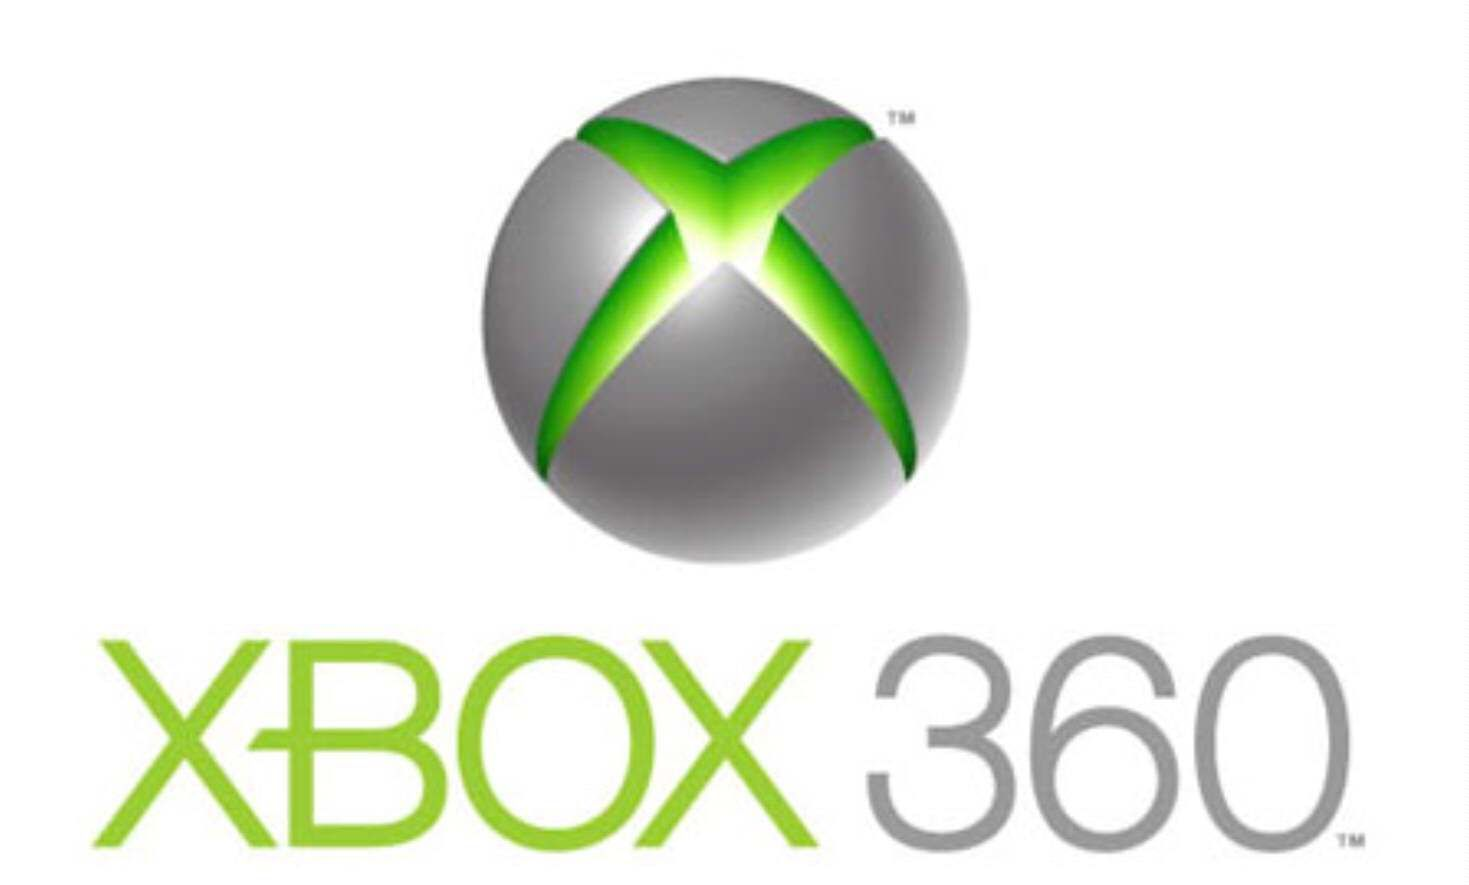 The Xbox 360 Logo Was An Improvement Upon The Old Xbox Logo For A